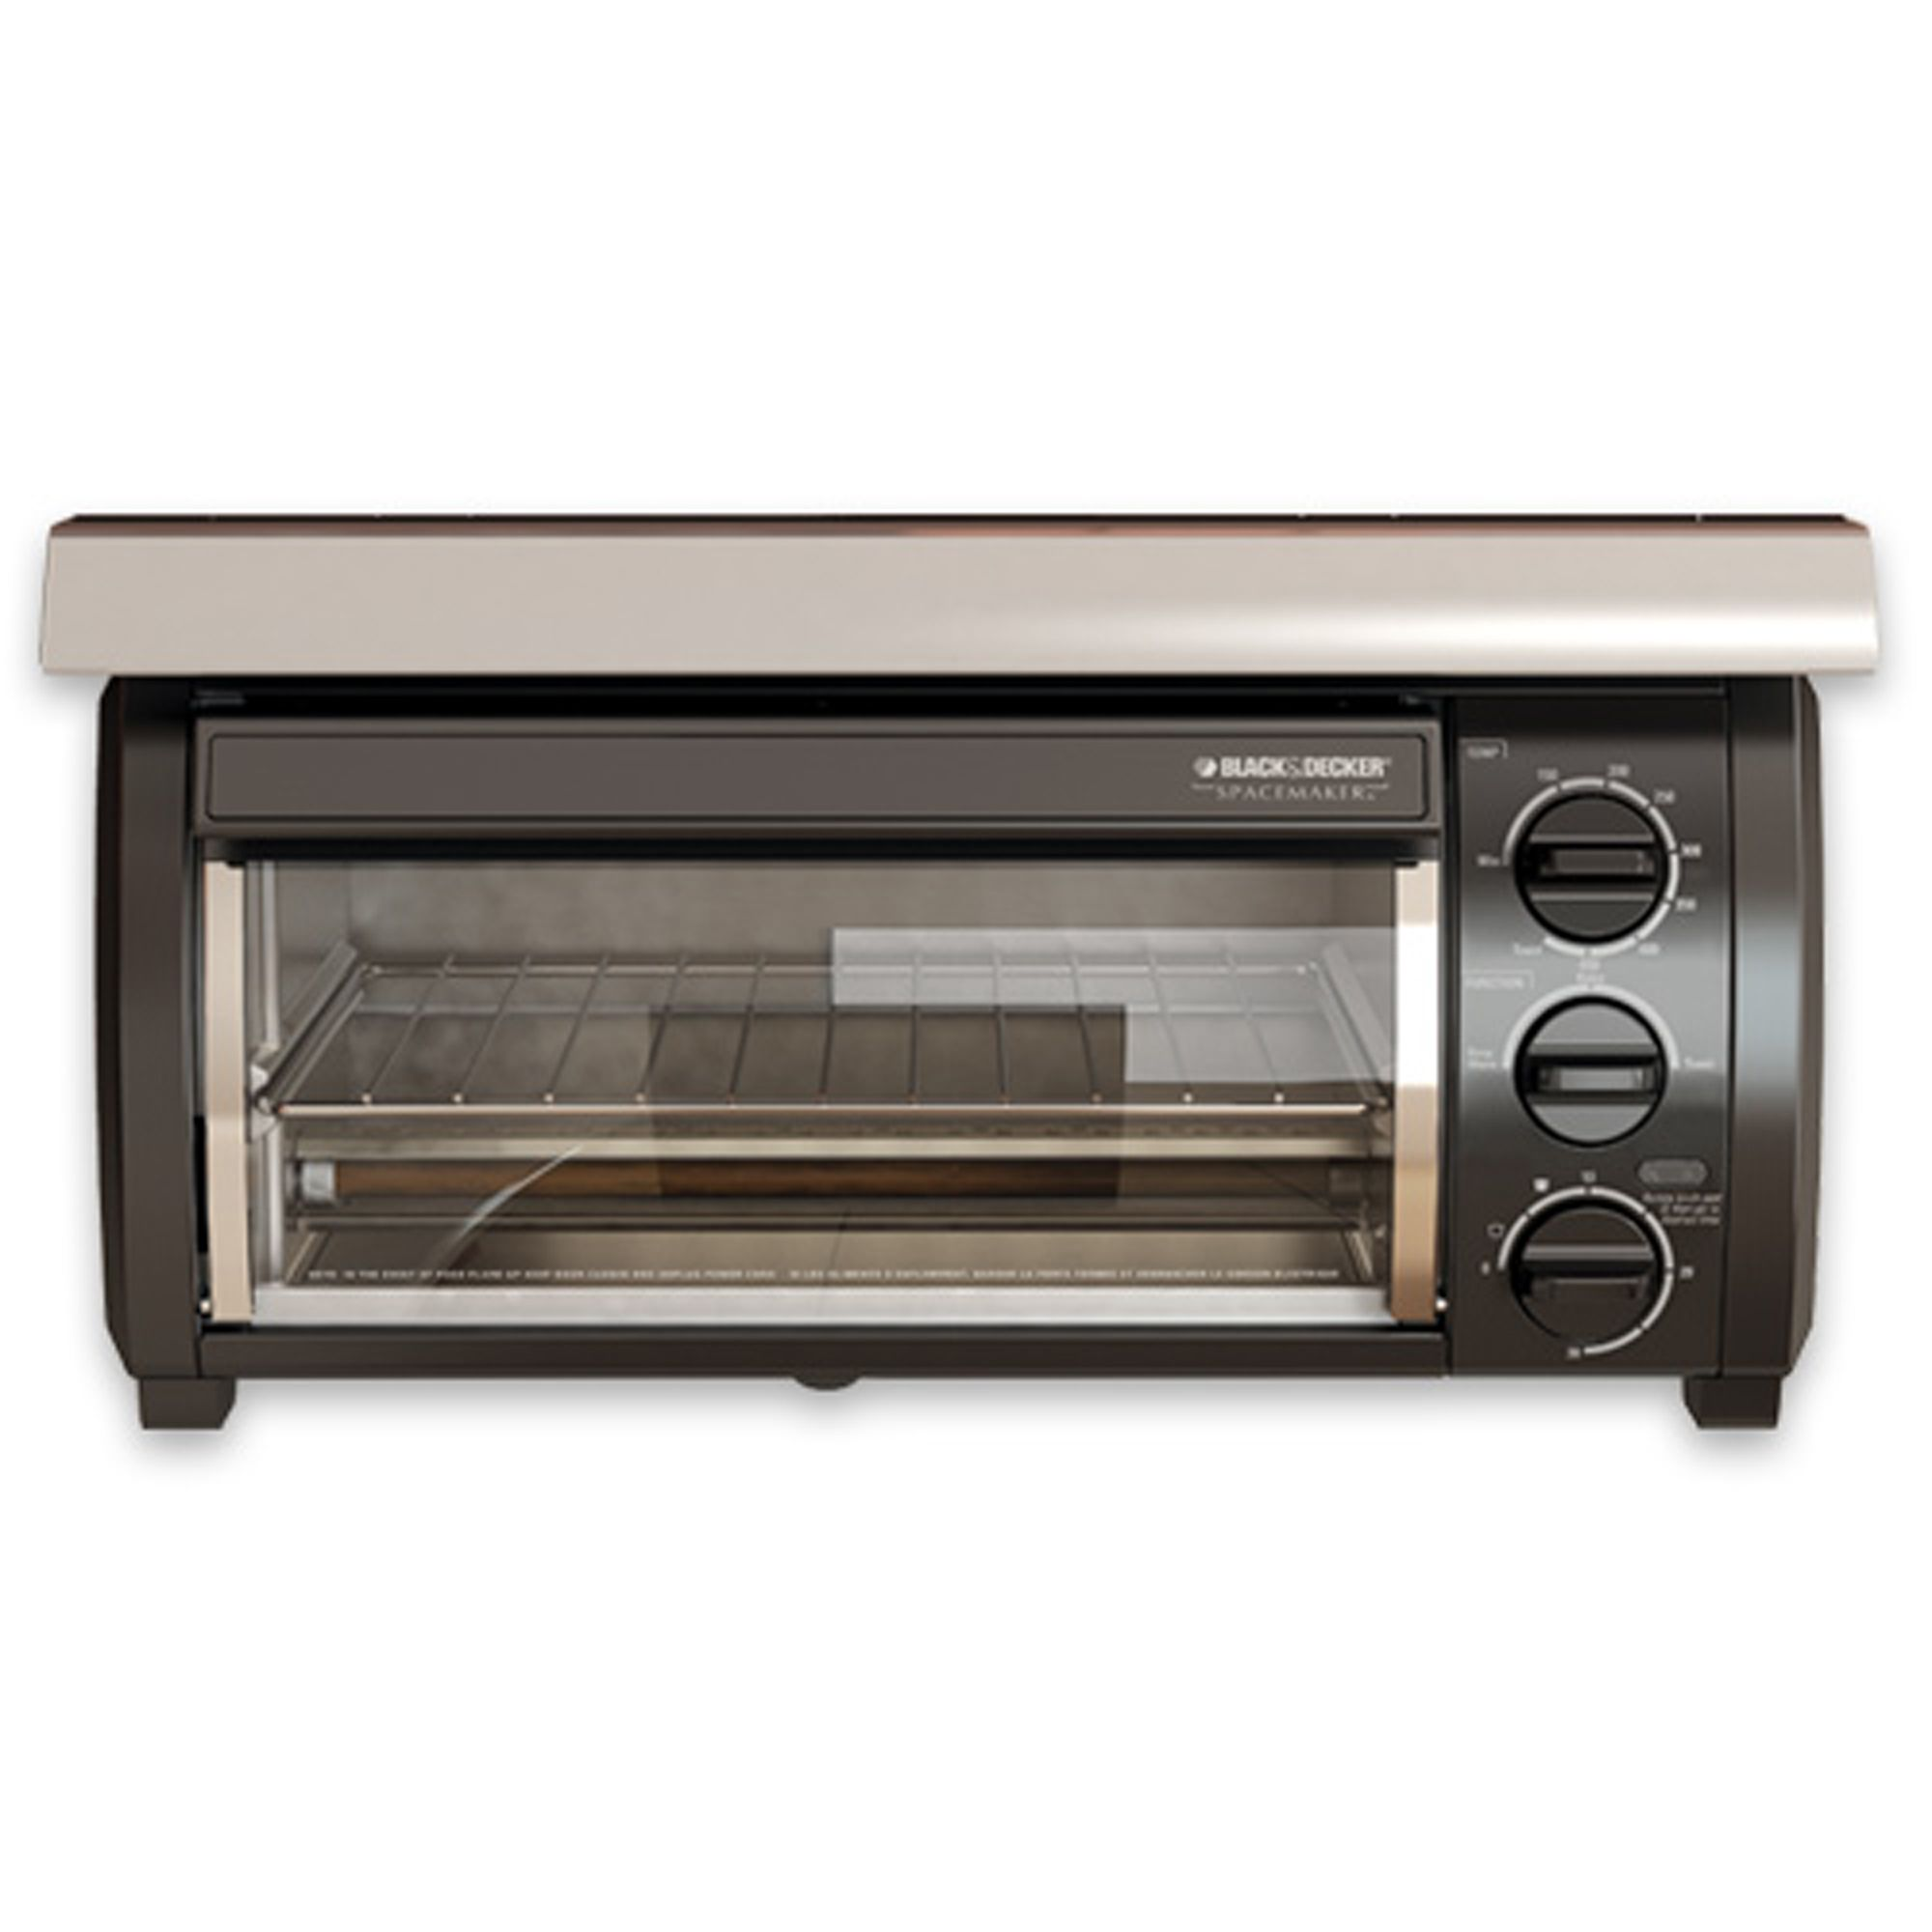 Buy Black And Decker Spacemaker Appliances Read Reviews On The Best Toaster Ovens In The Spacemaker Family Sh Toaster Oven Under Cabinet Toaster Oven Toaster